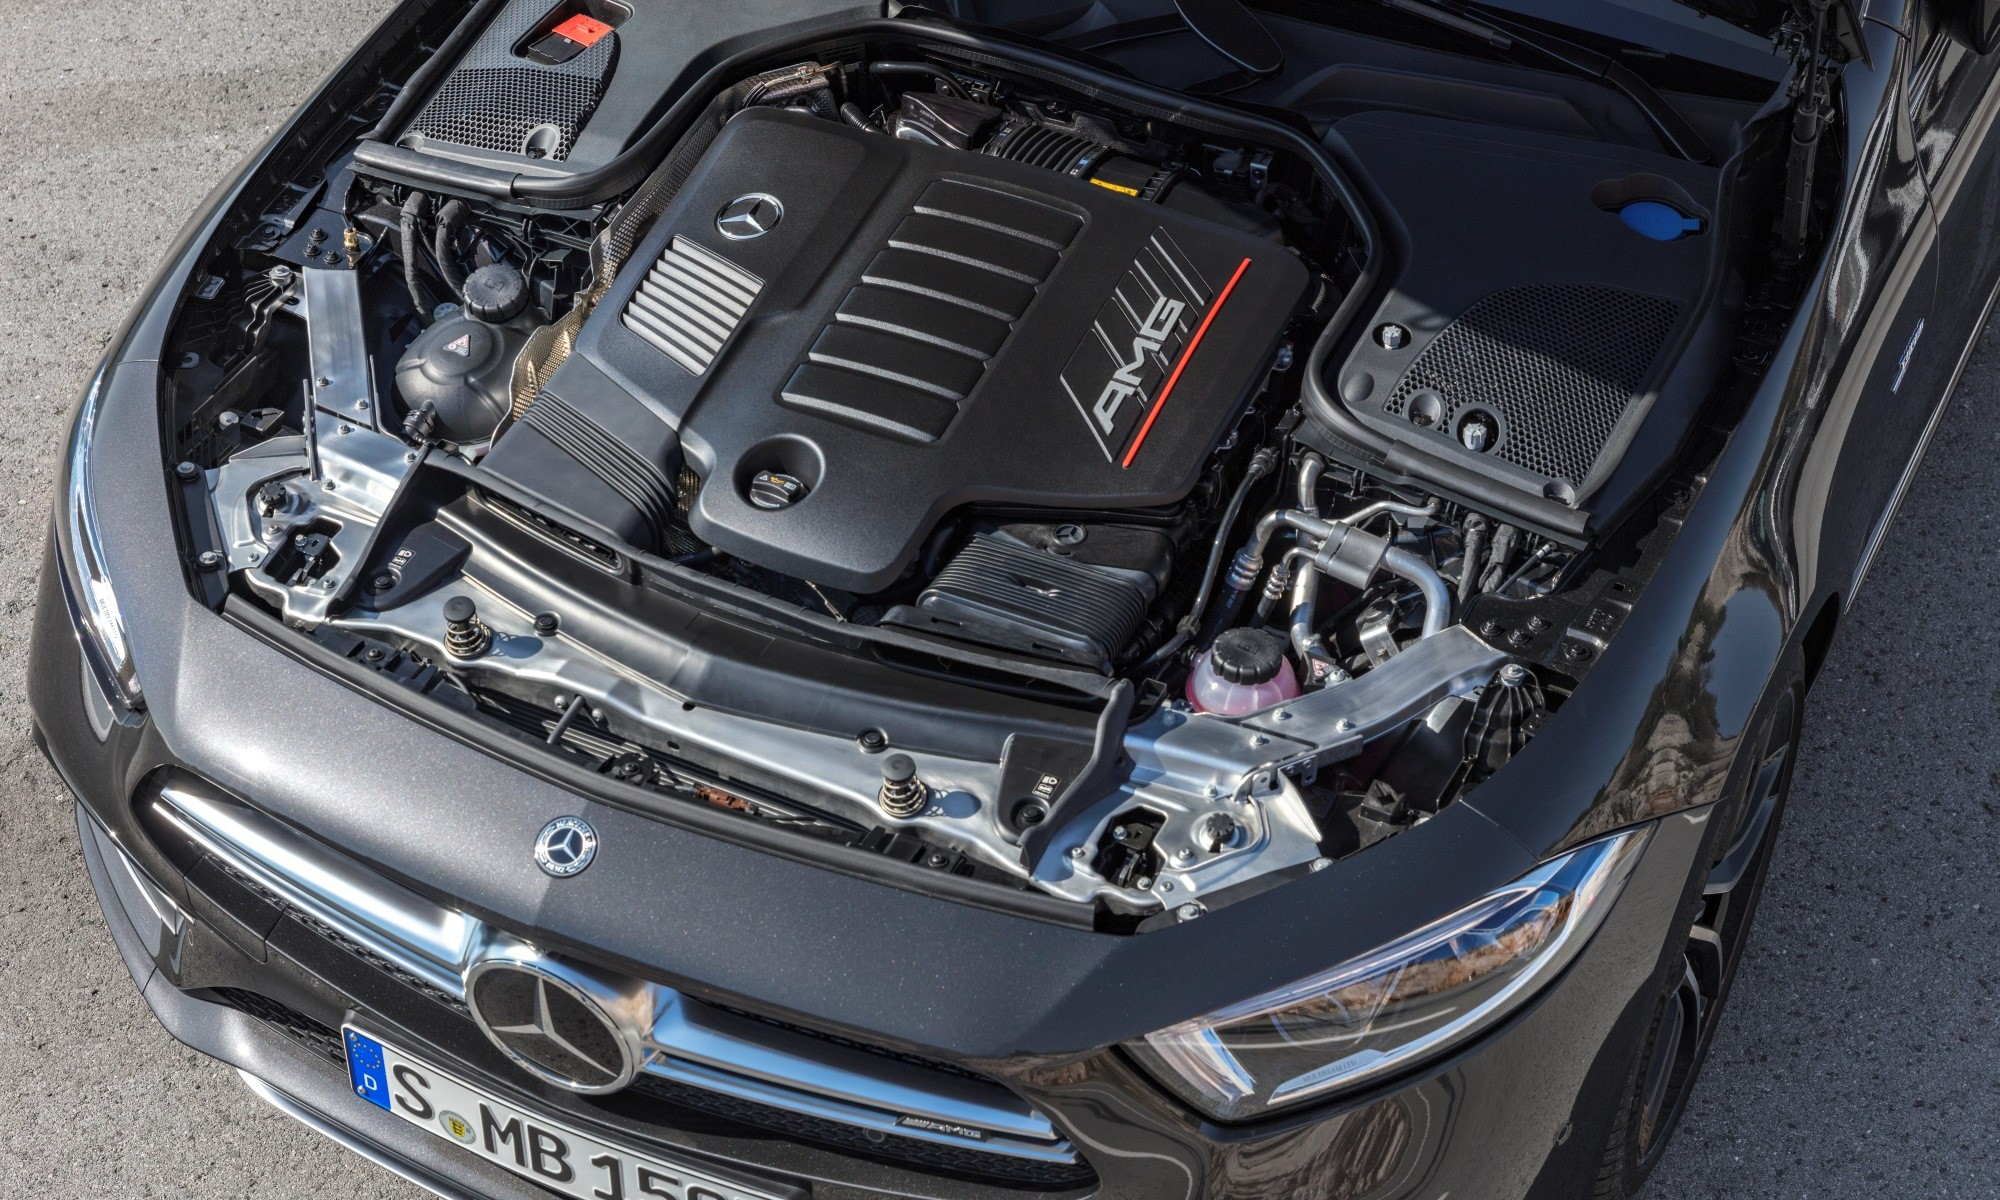 Mercedes-AMG CLS53 engine